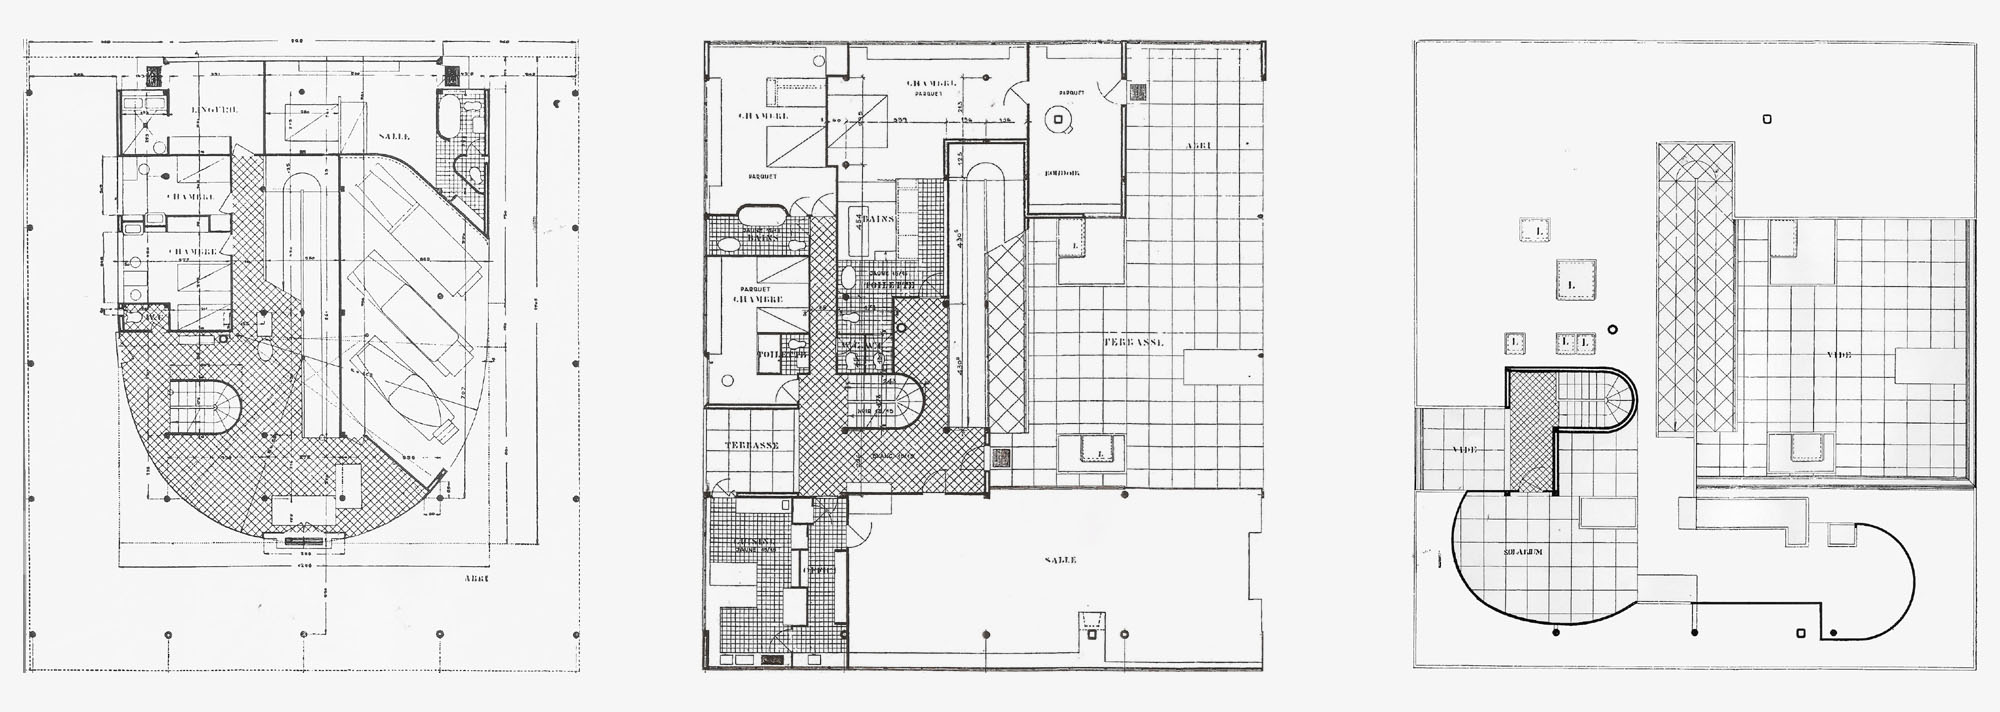 Le corbusier villa savoye part 2 architecture for Villa floor plans